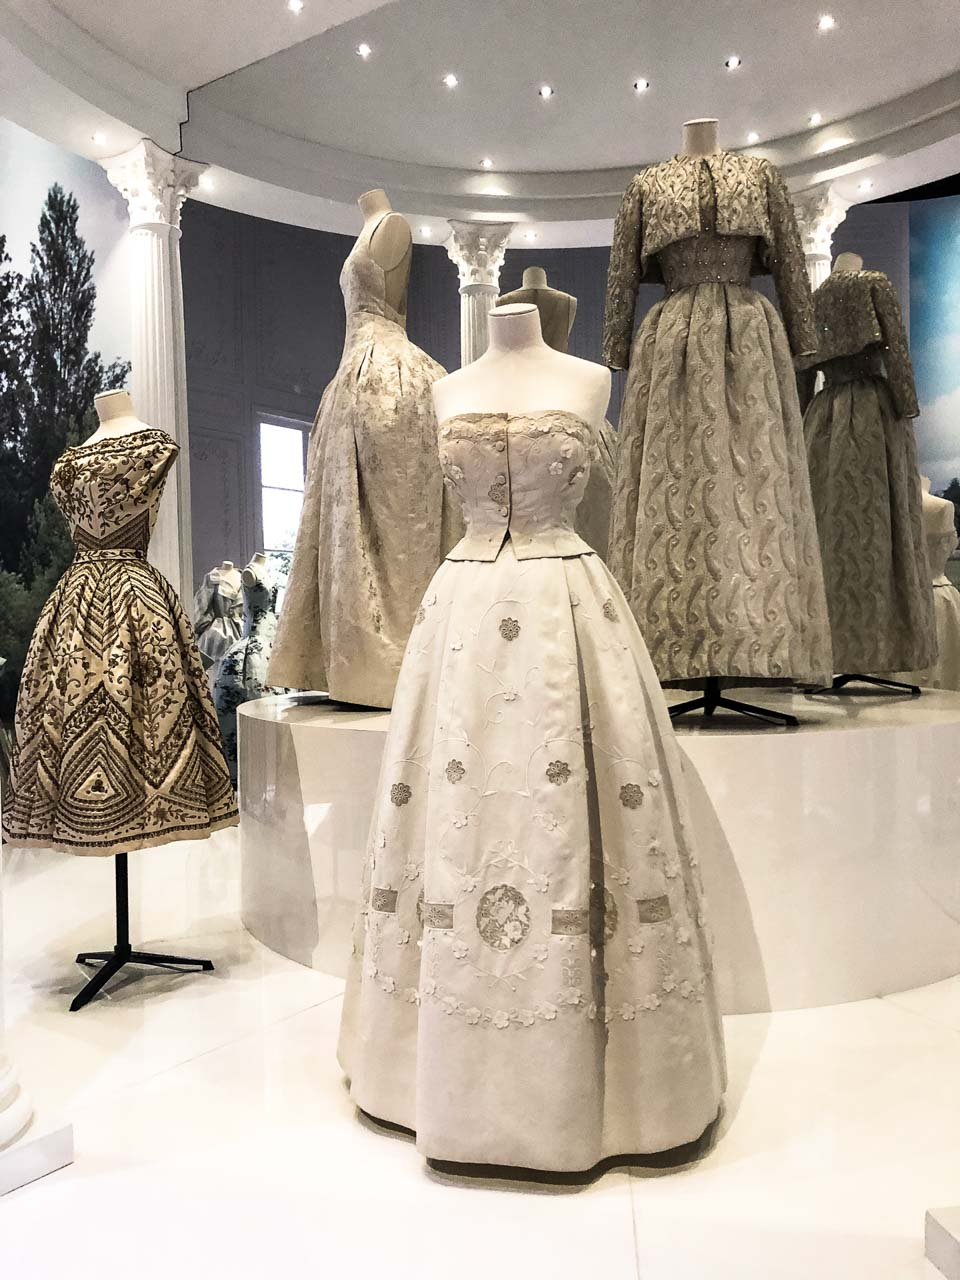 Dior dresses in the Historicism section of the Christian Dior: Designer of Dreams exhibition at the Victoria and Albert Museum in London